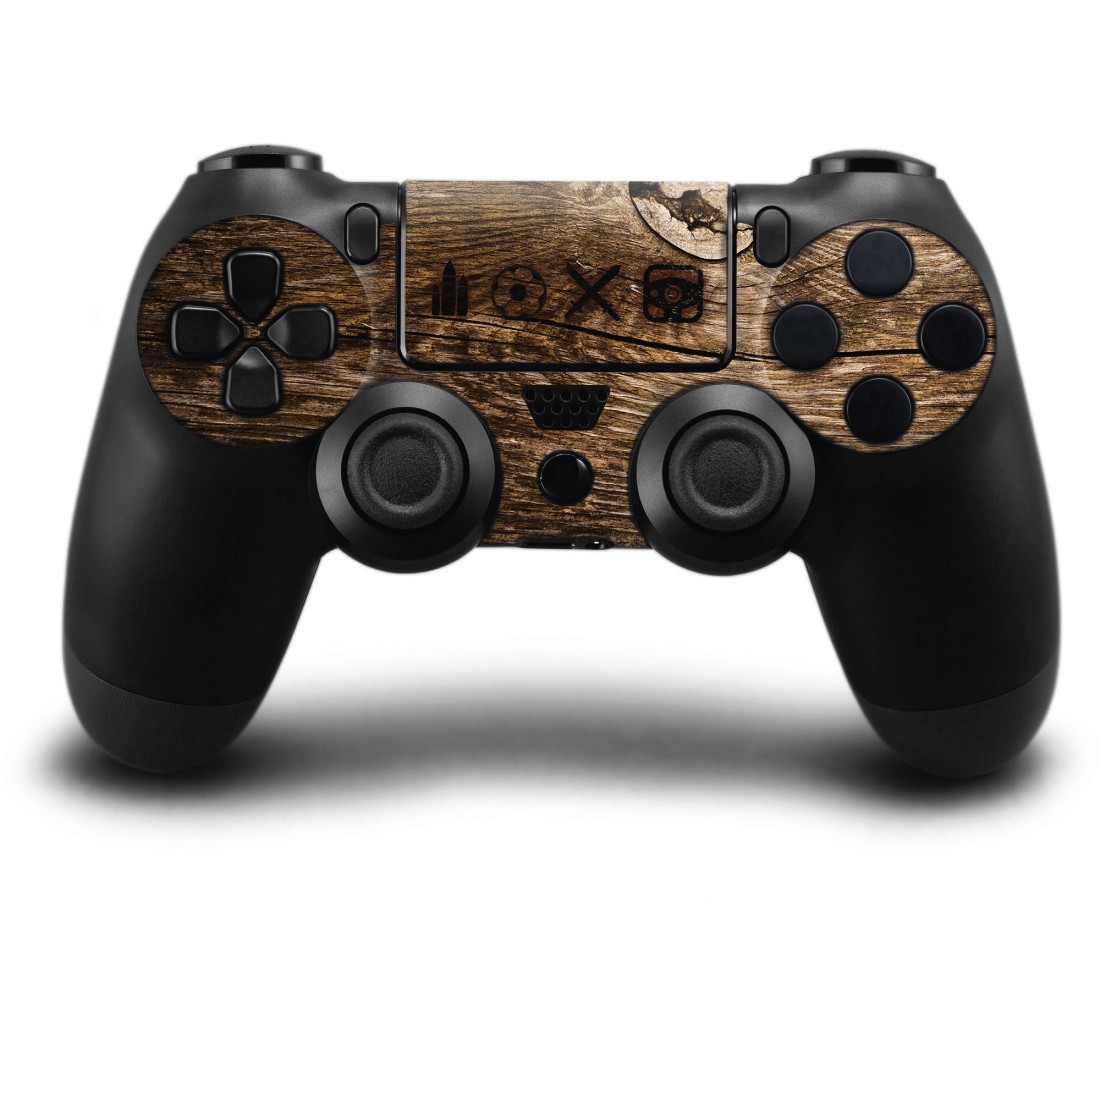 "awx3 High-Res Appliance 3 - Hama, ""Wood"" Design Skin for PlayStation 4 PRO"